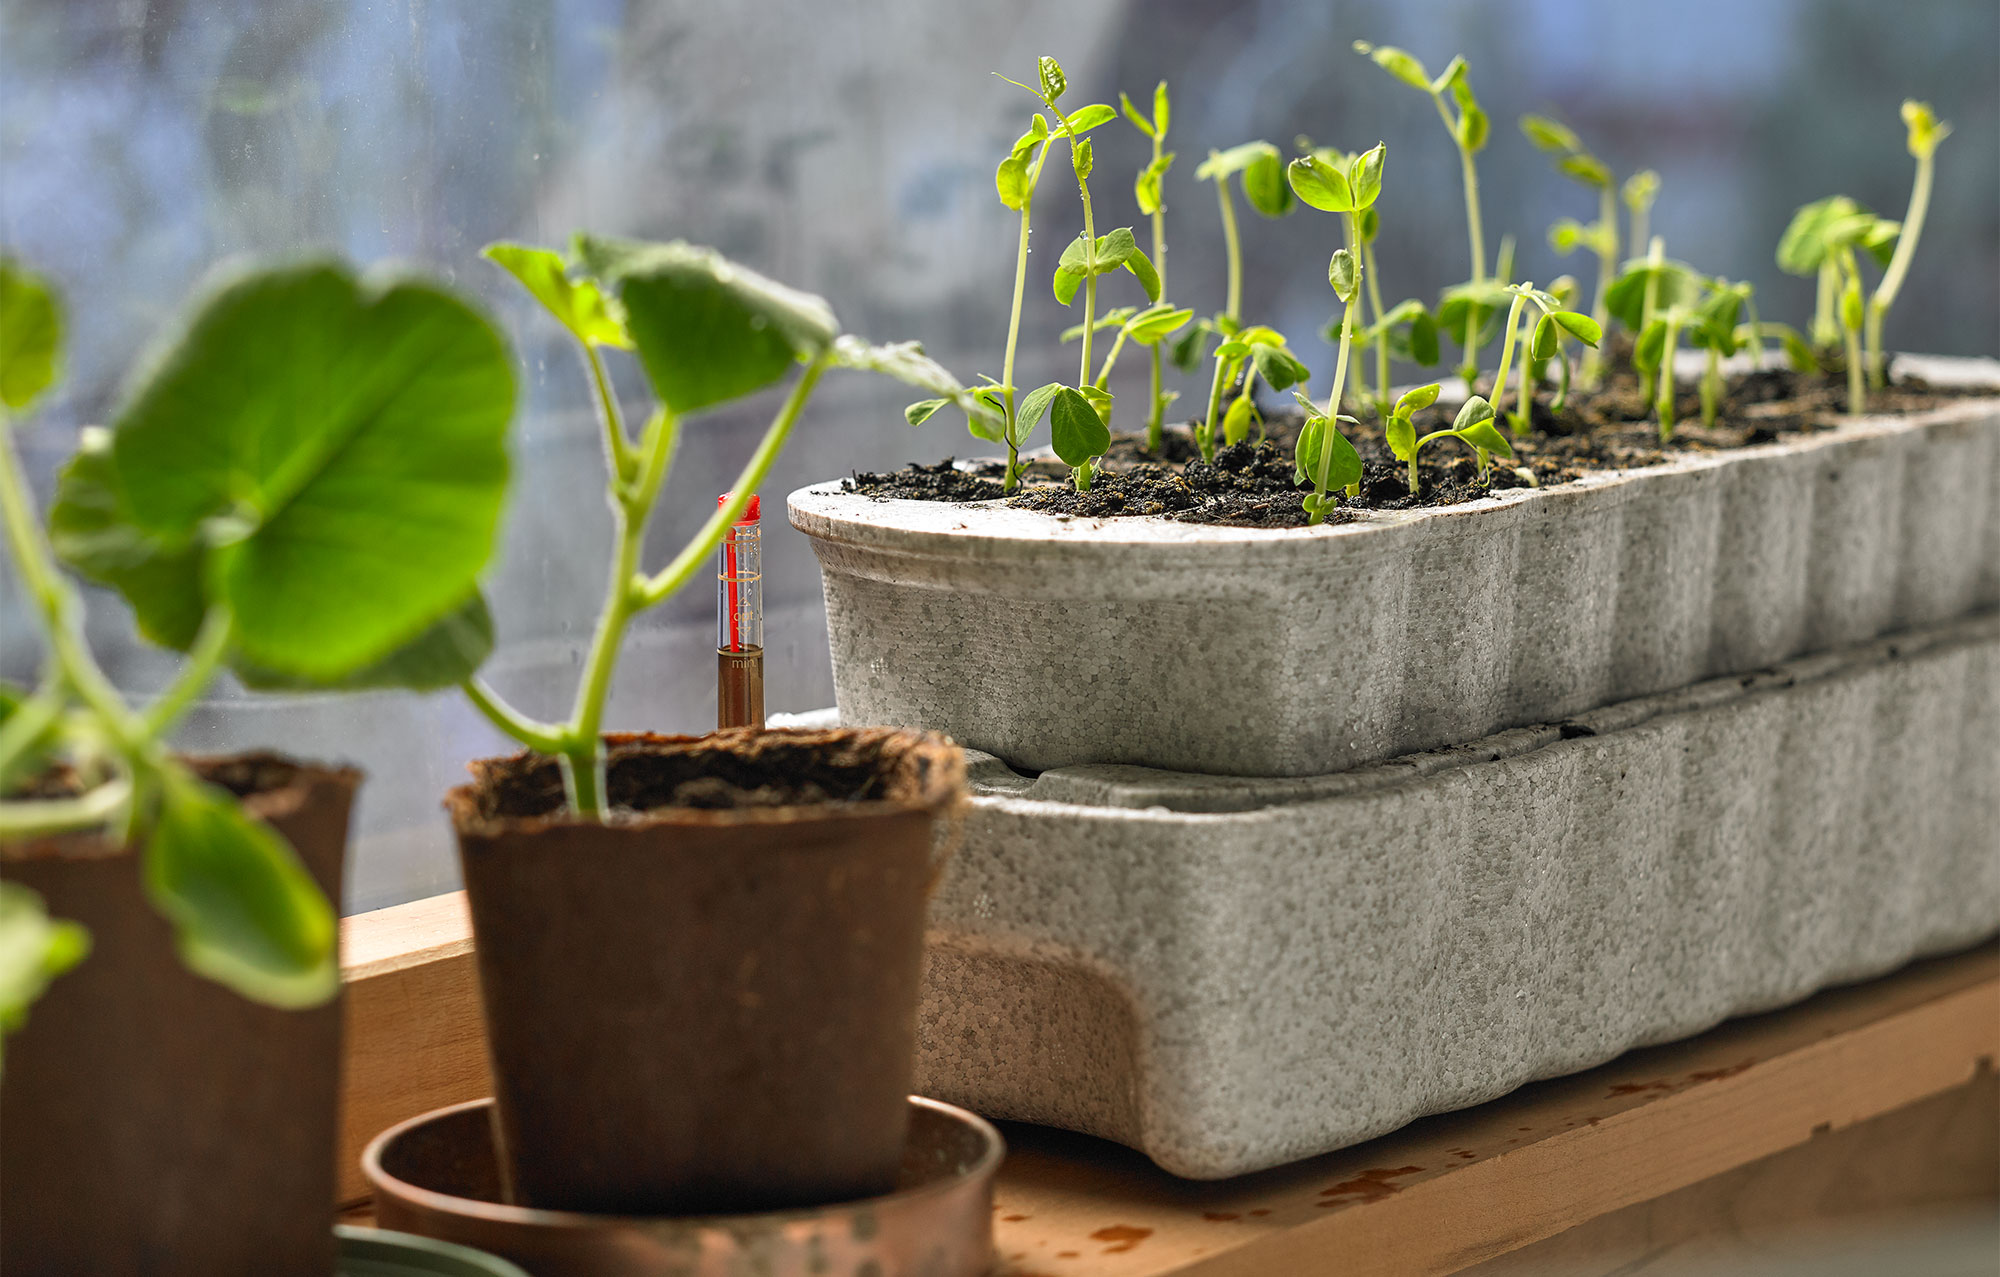 Seeding pots and trays